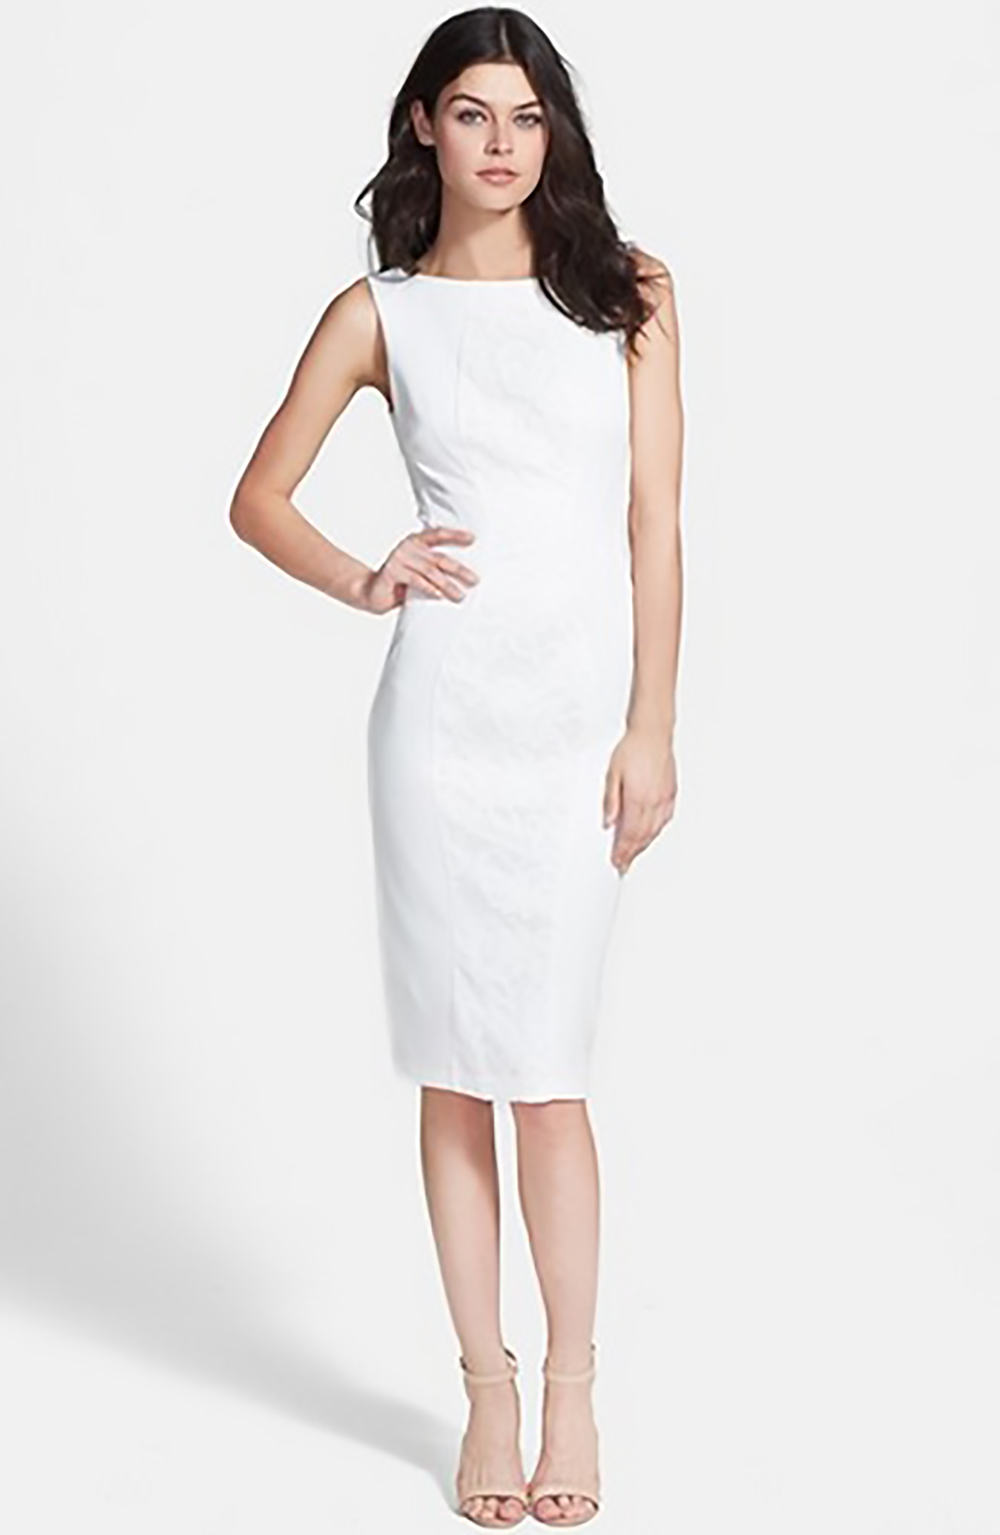 The Work Look — Work Essentials. The sheath dress